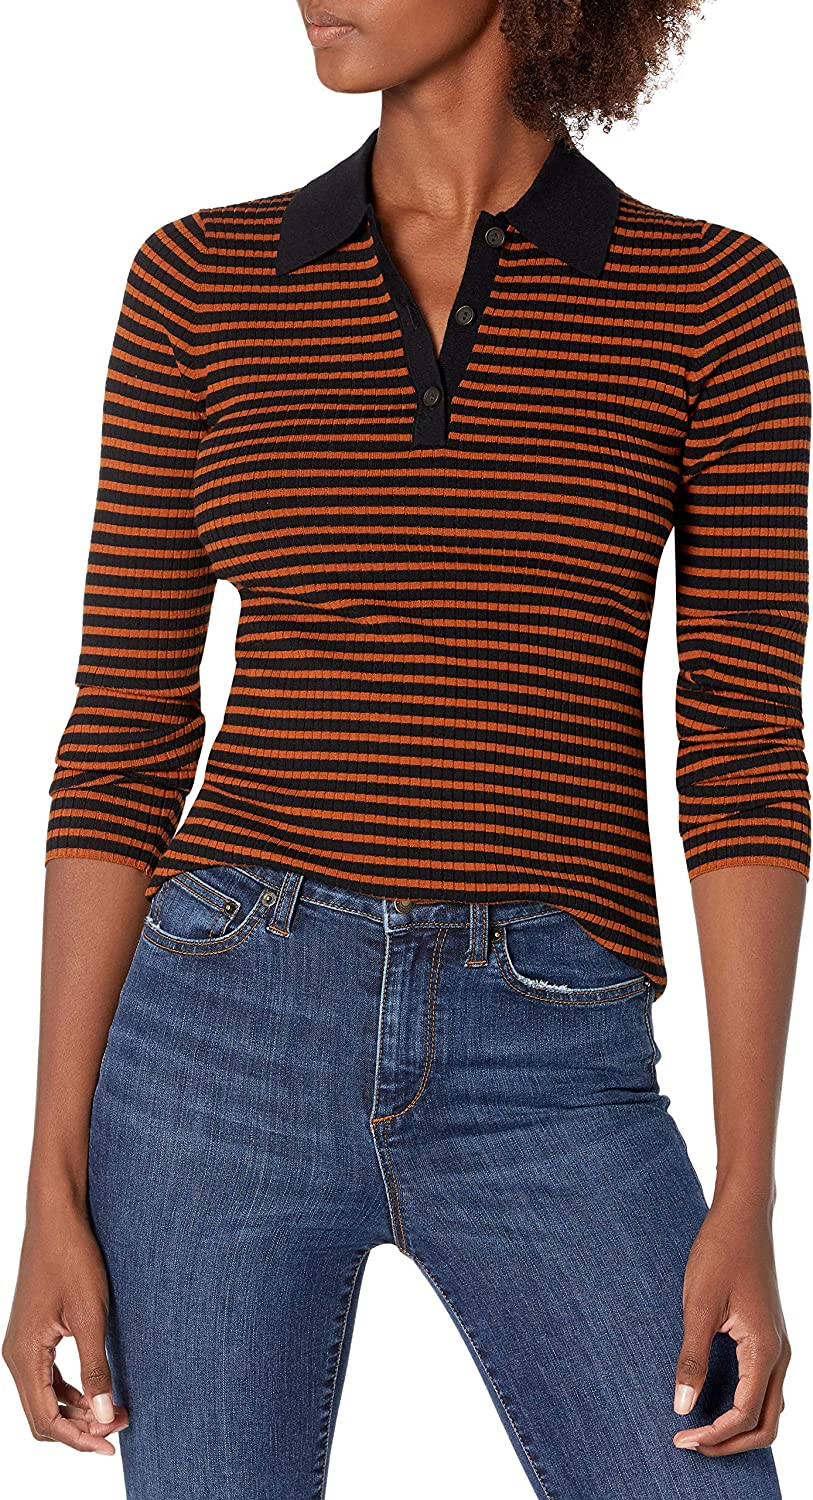 Lark & Ro Women's Standard Premium Viscose Blend Ribbed Long Sleeve Polo Fitted Sweater